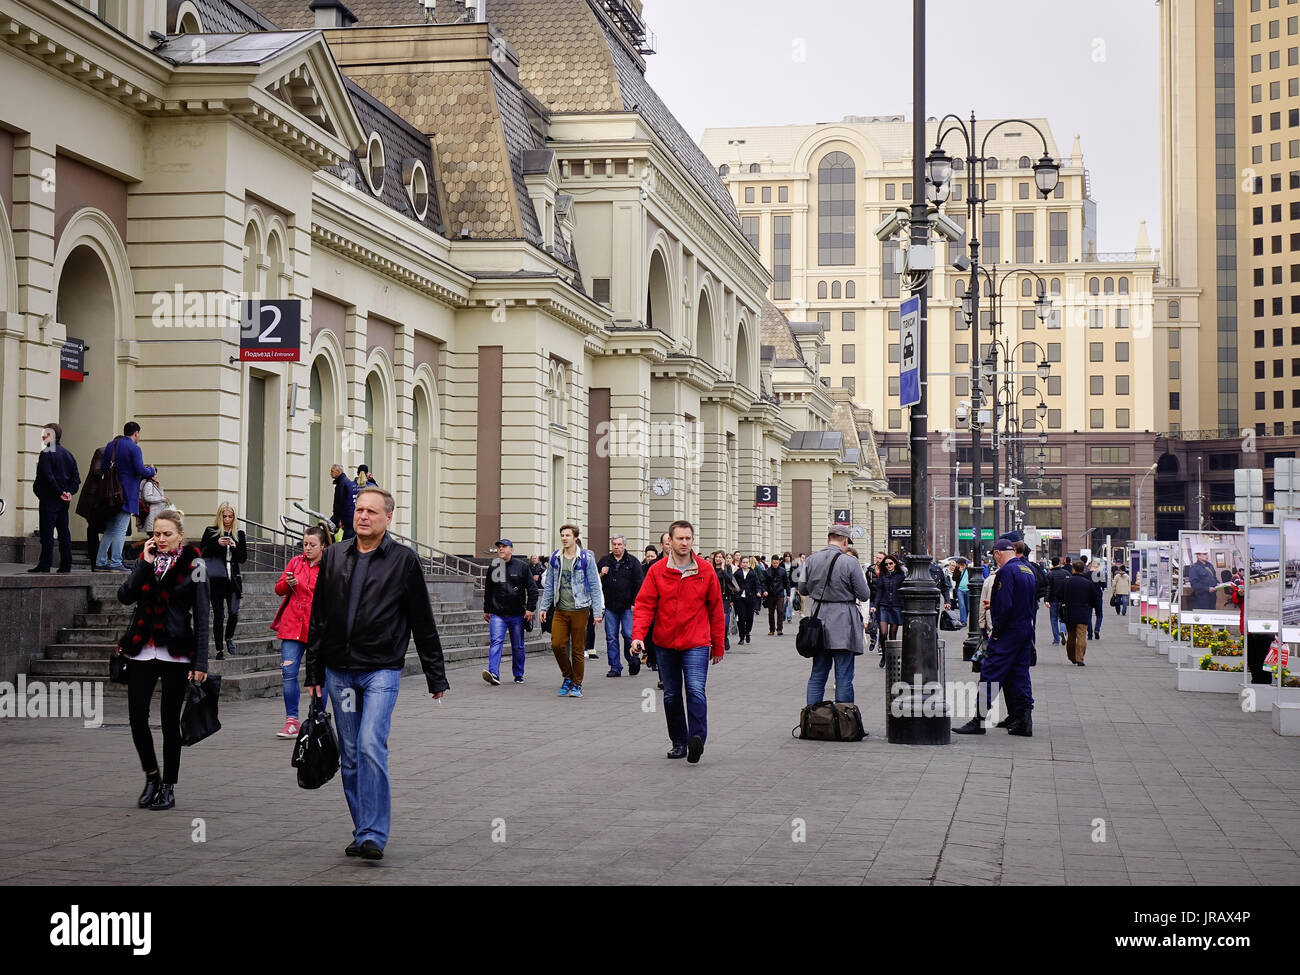 Moscow, Russia - Oct 3, 2016. People on Old Arbat Street in Moscow, Russia. Moscow is the capital and most populous city of Russia, with 13.2 million  - Stock Image